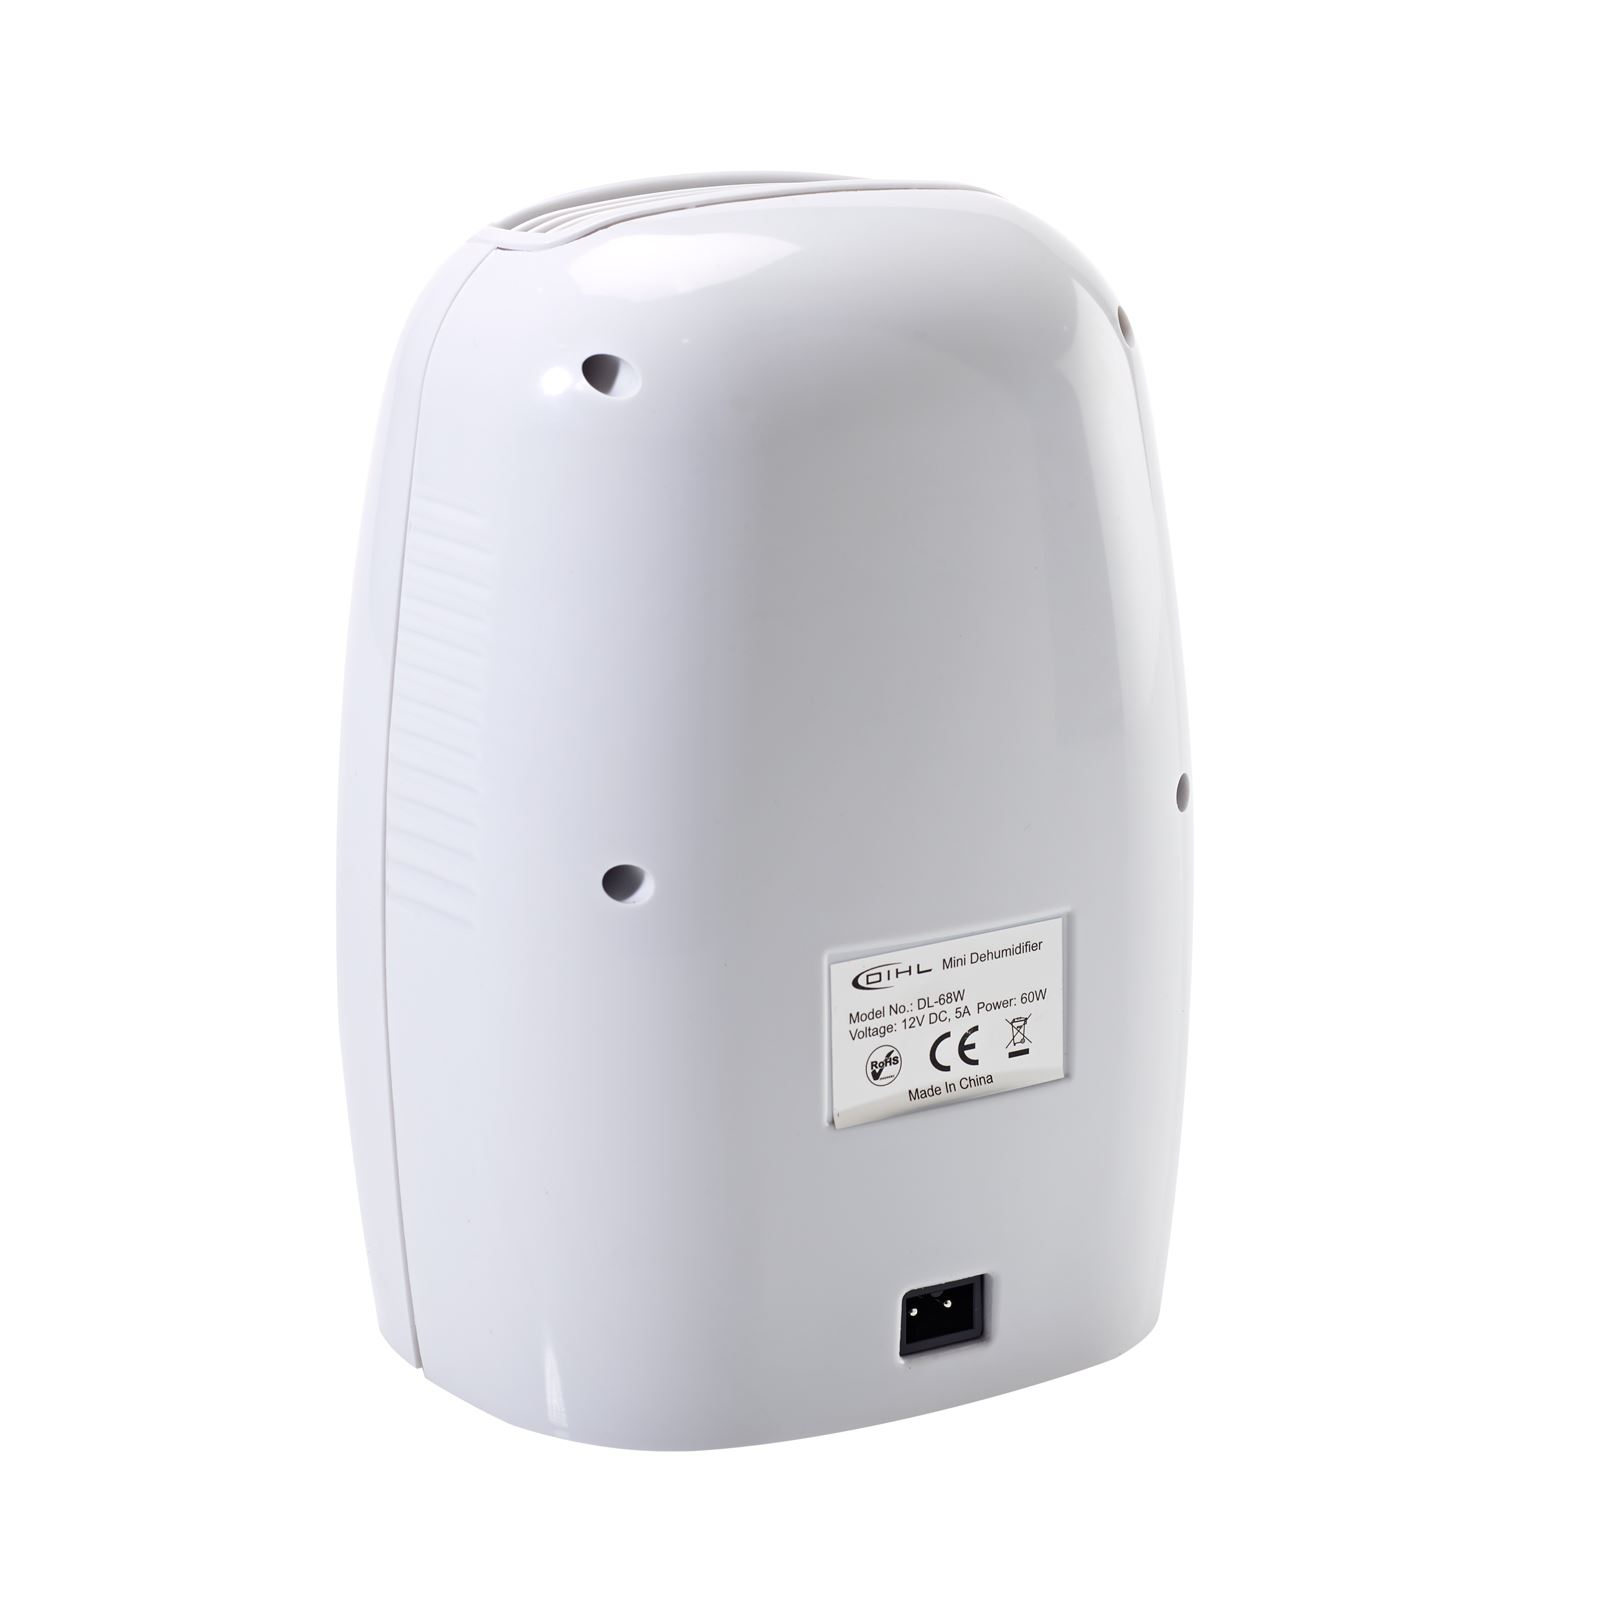 Dihl Mini Small Air Dehumidifier Home Bedroom Kitchen Bathroom Car #5D5D6E